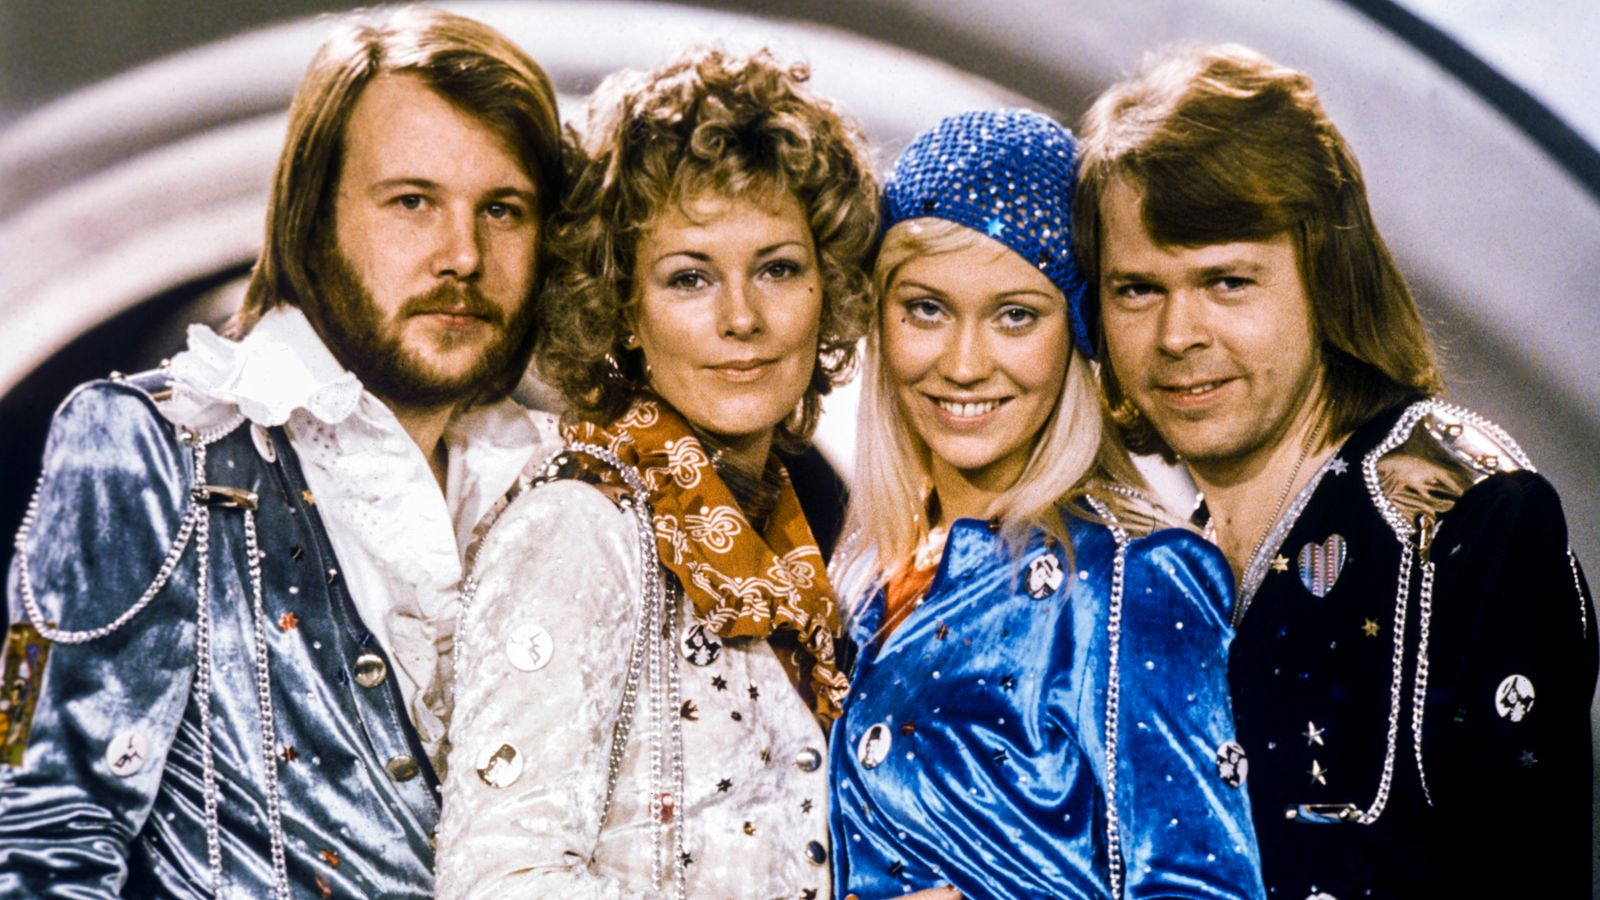 ABBA star Björn Ulvaeus: Waterloo took us from rat race - I wish that for other songwriters